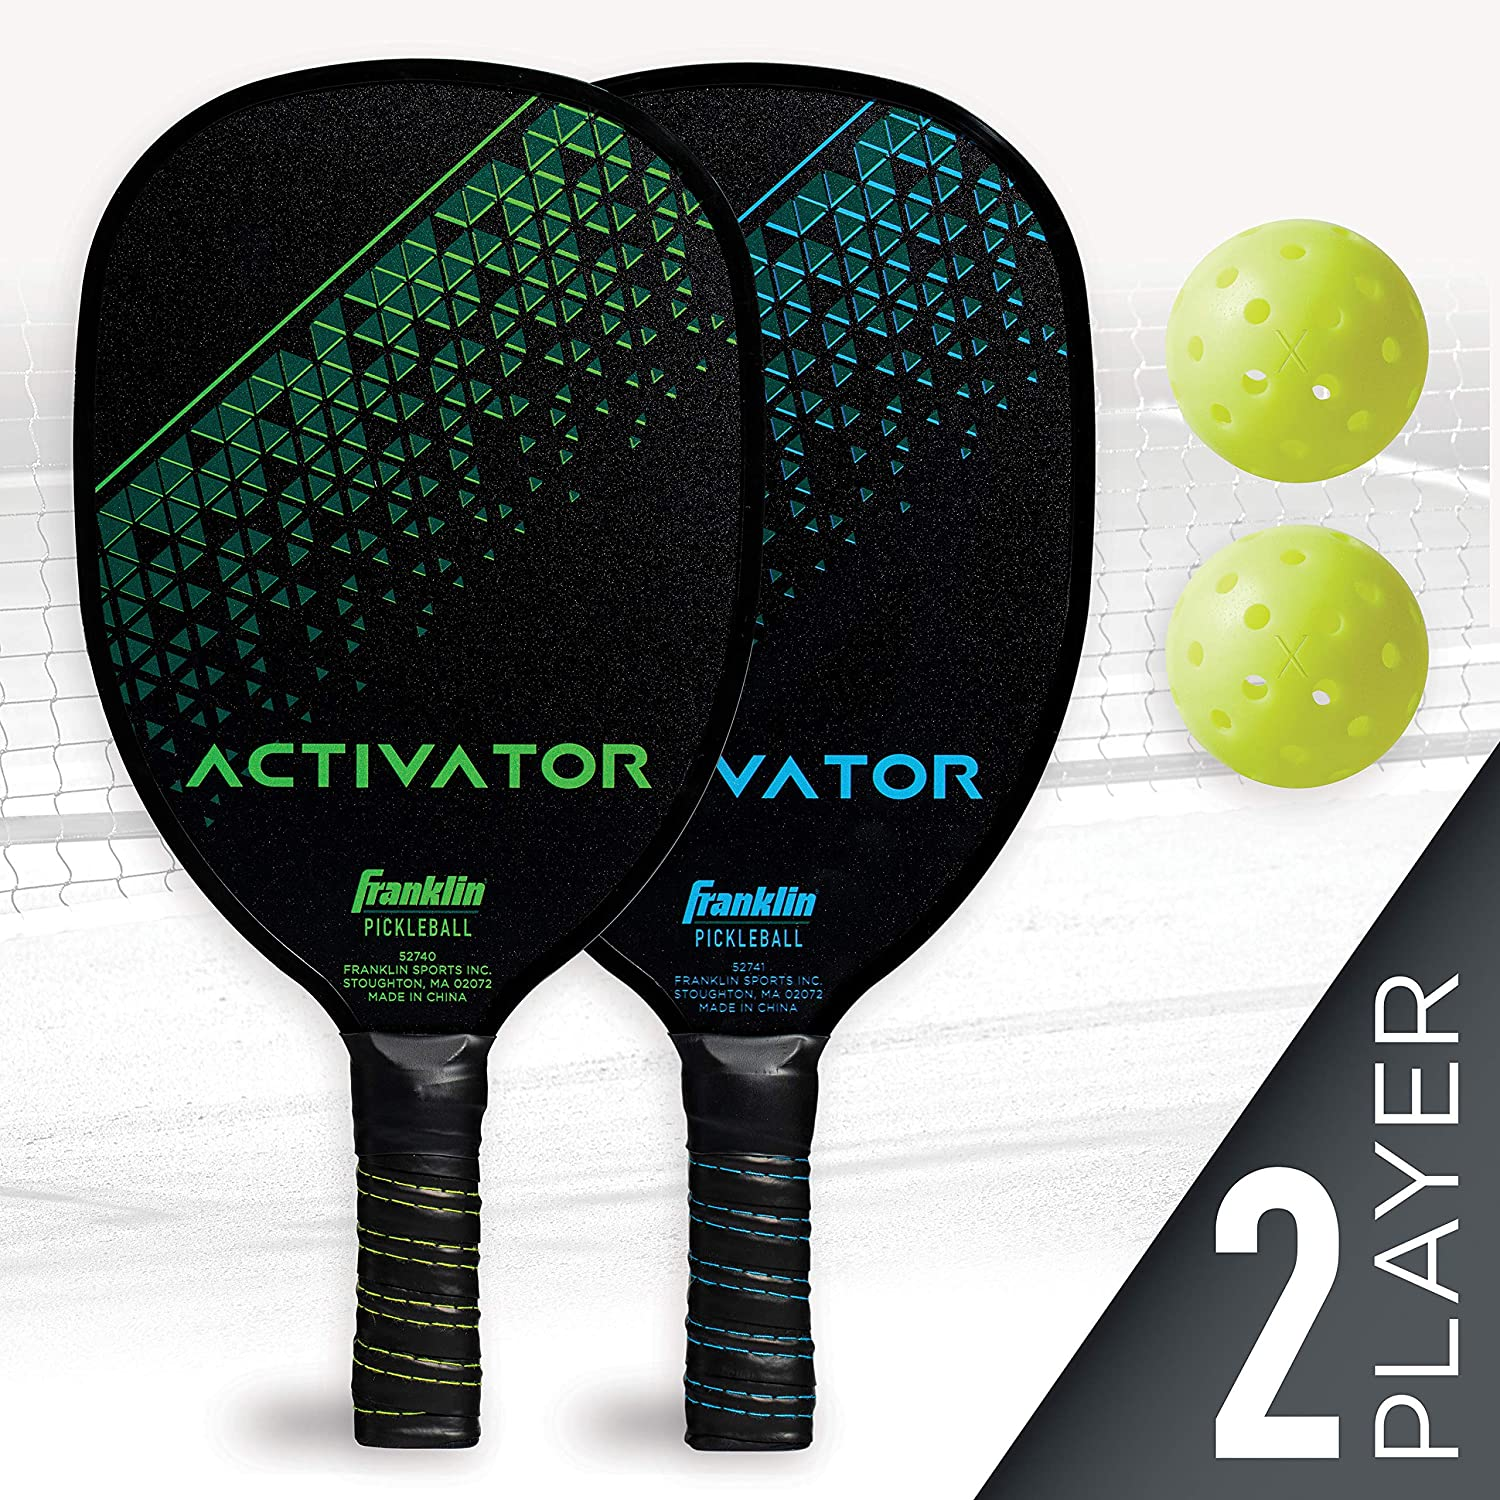 Franklin Sports Pickleball Paddle and Ball Set - Wooden - Activator - 2 Player - USAPA Approved : Sports & Outdoors